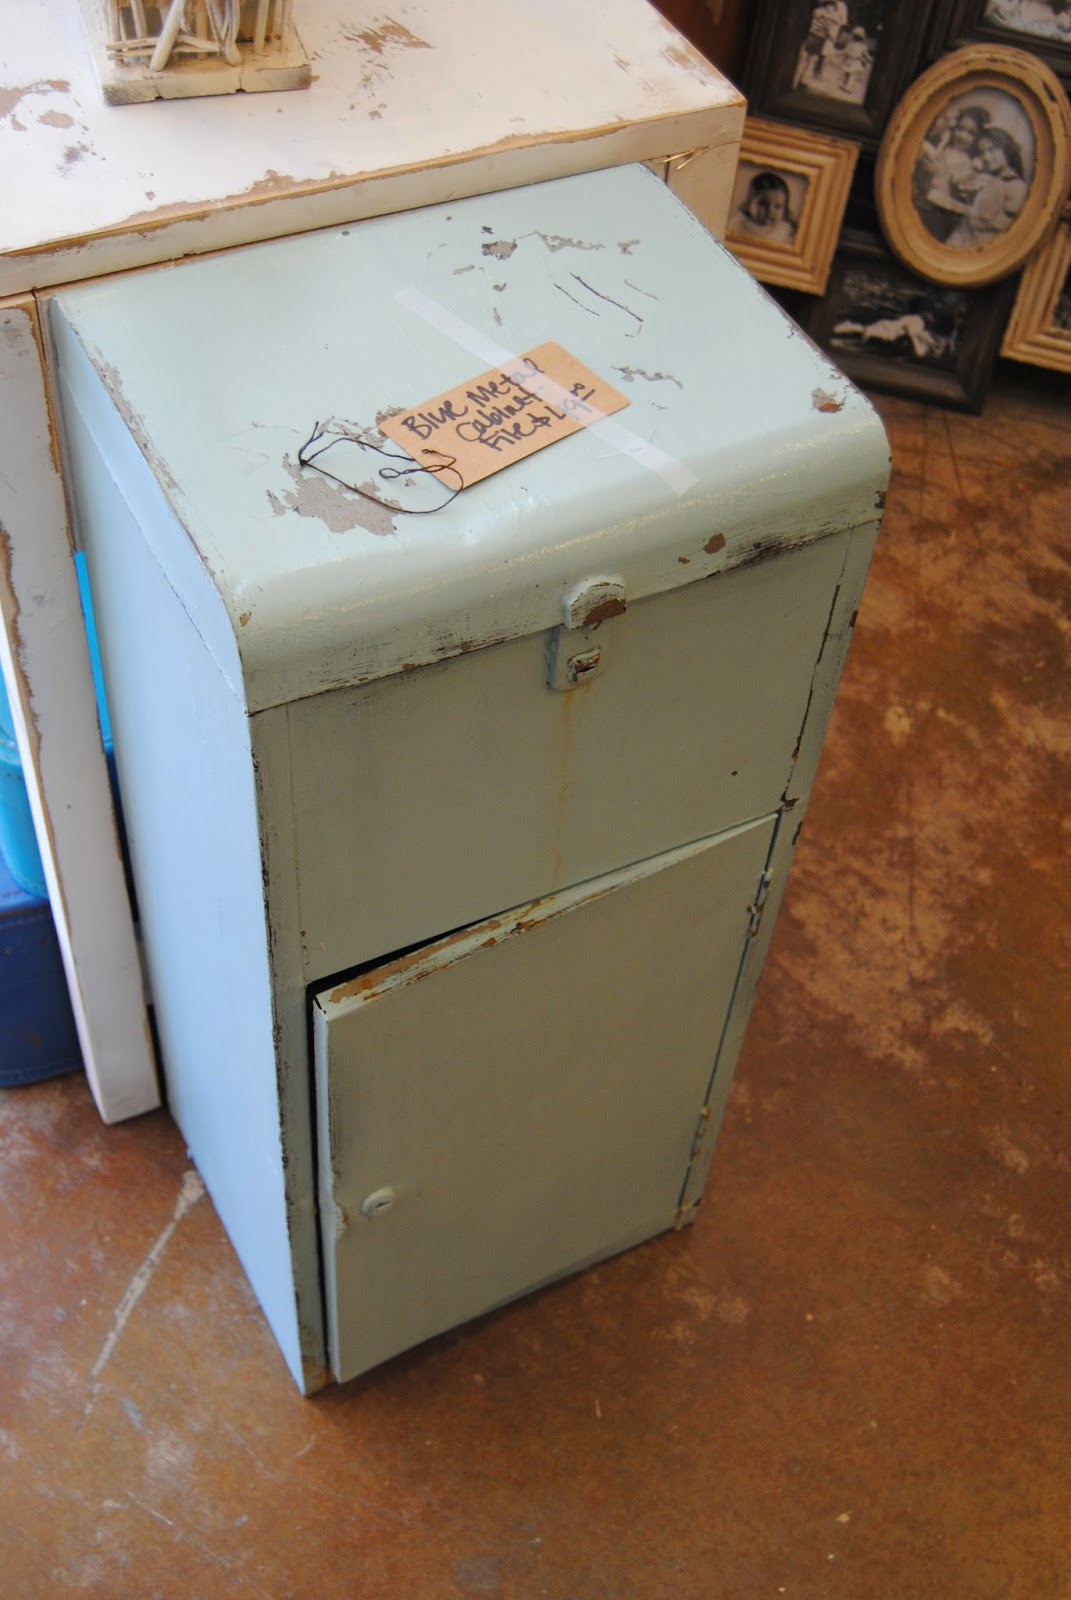 Rural King Marine Deep Cycle Batteries Recycle Batteries In Austin Texas Laptop Battery Hq Coupon Rural King Marine Deep Cycle Batteries Recycling Batteries Yugioh Discount Car Batteries By Me The most crime committed against power-saving is by accumulating phantom loads.